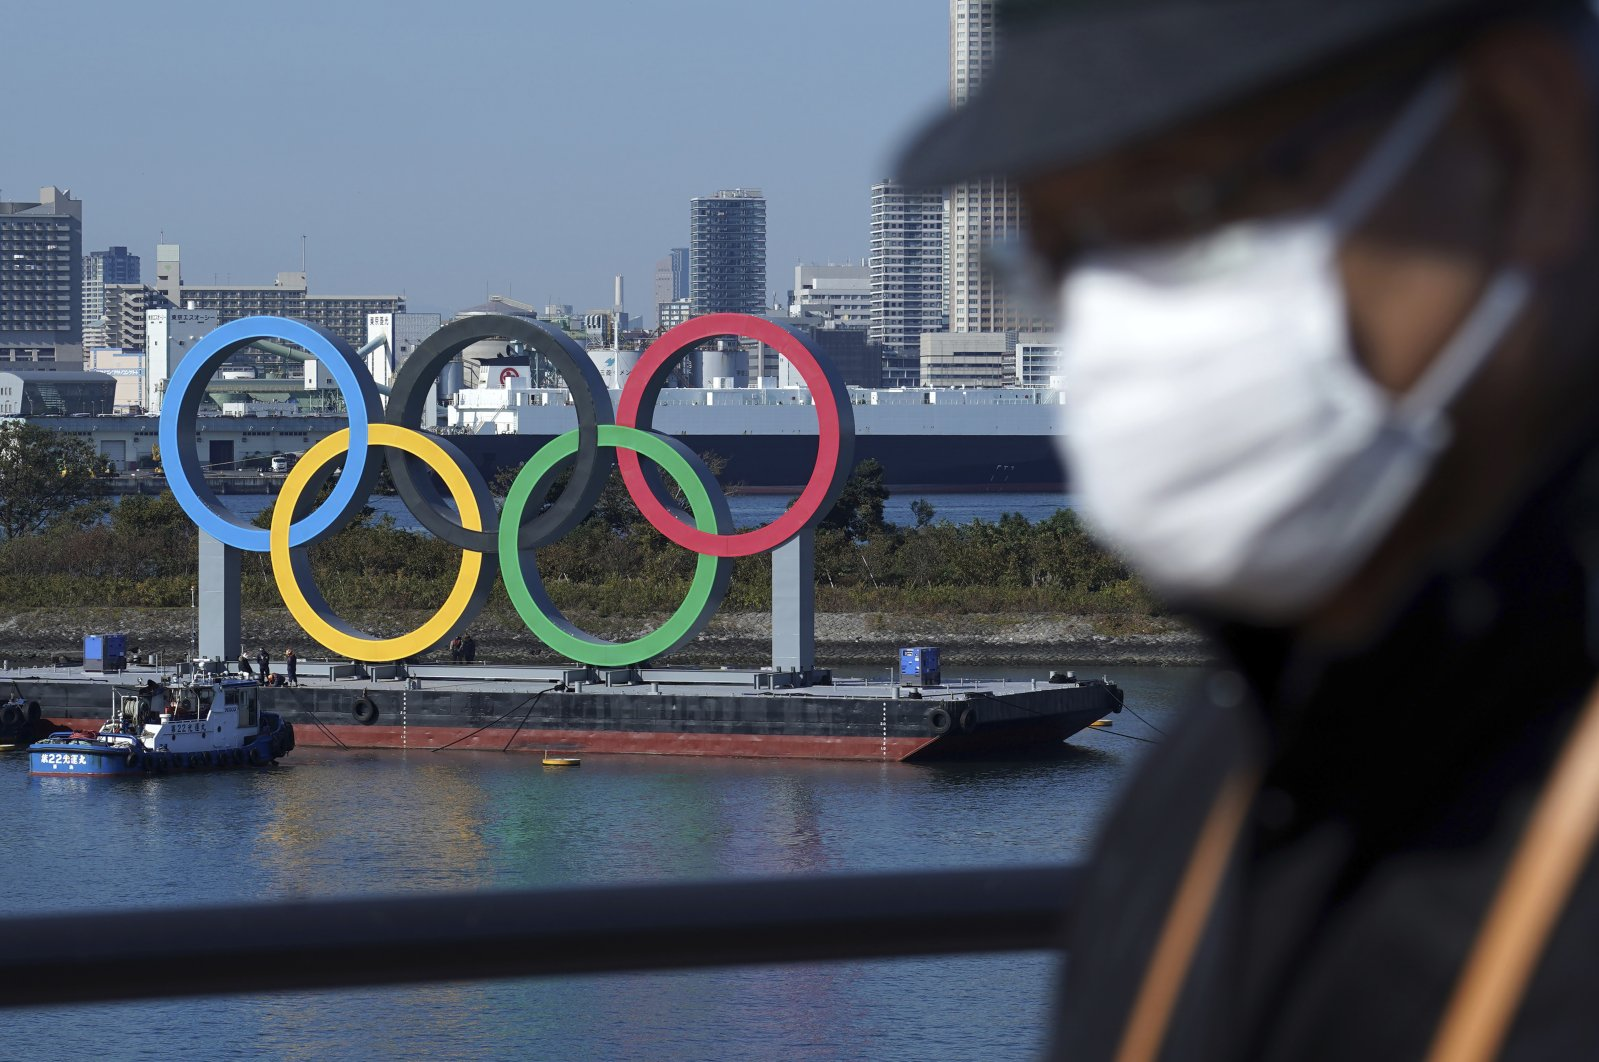 A man wearing a face mask walks with the Olympic rings in the background, in Tokyo, Japan, Dec. 1, 2020. (AP Photo)